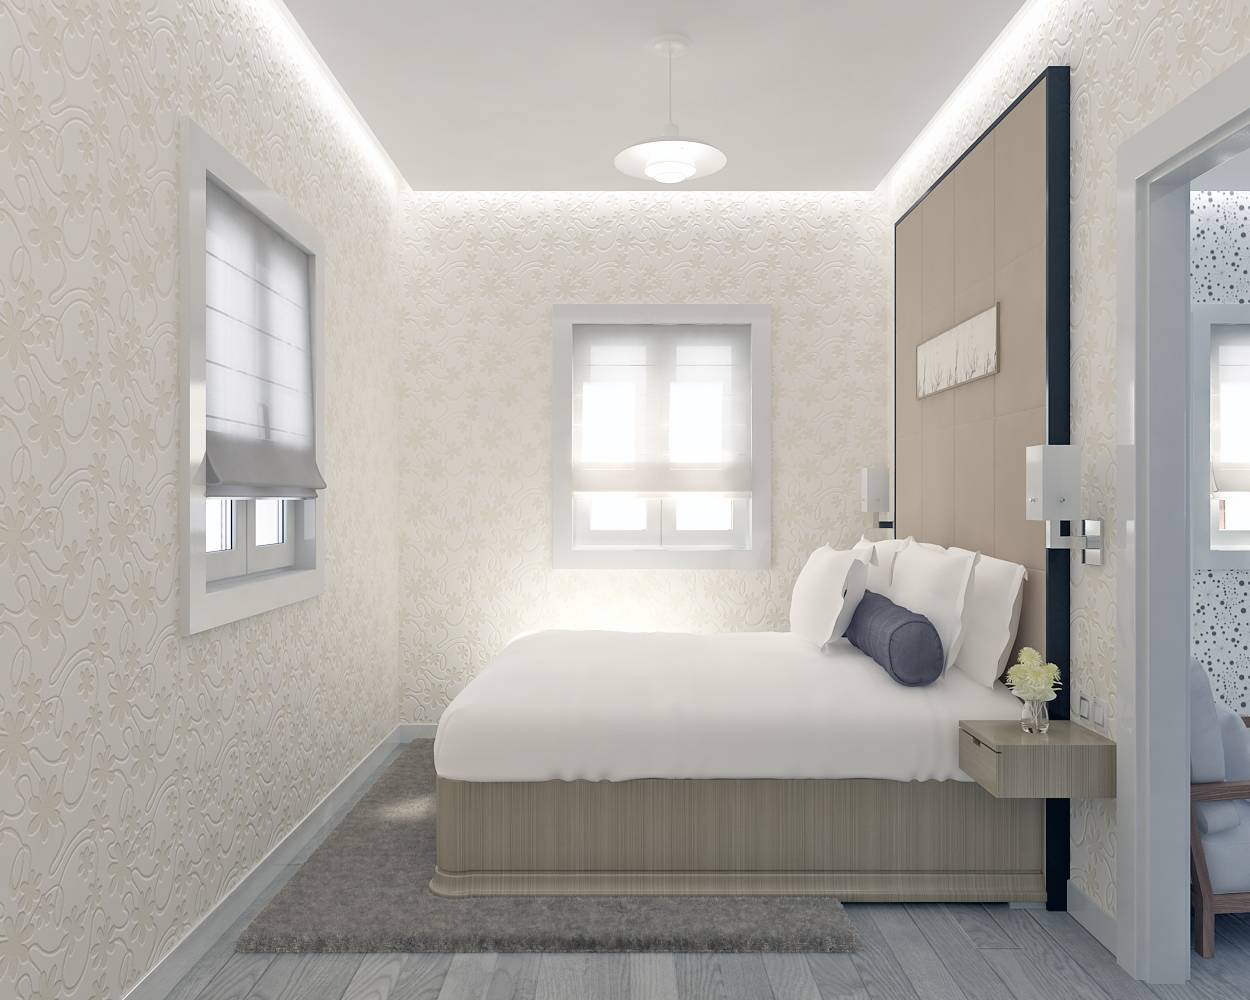 Mod le villa traditionnelle 100m2 tage r alisable dans for Amenagement chambre 10m2 pour 2